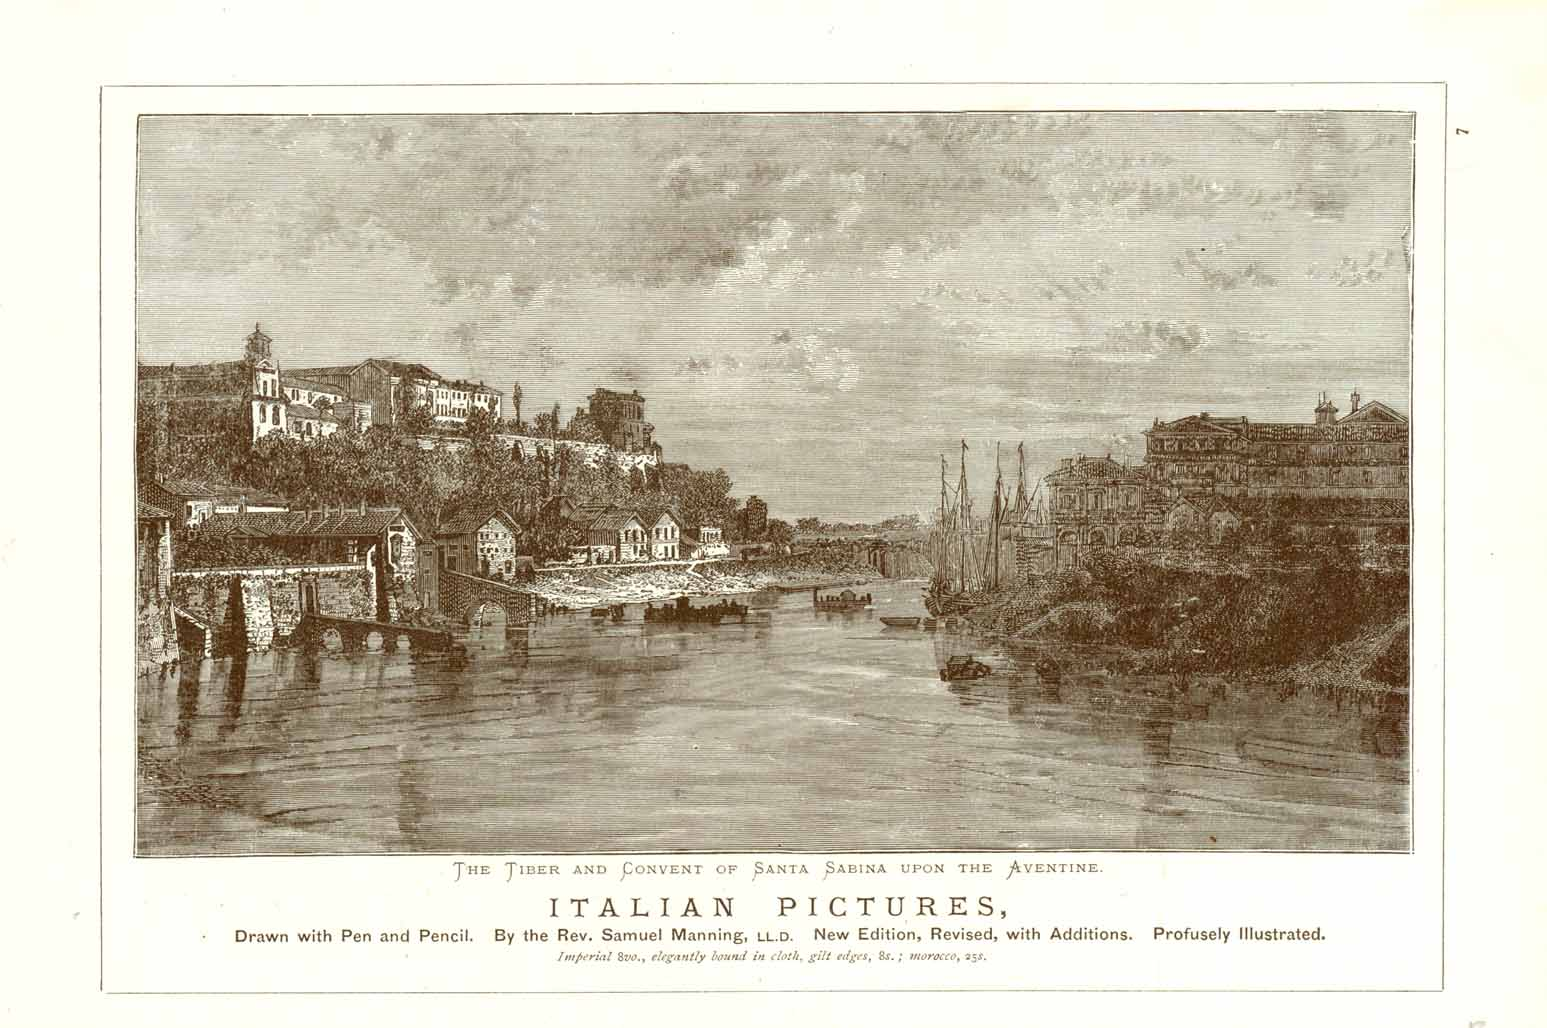 """The Tiber and Convent of Santa Sabina Upon the Aventine""  Wood engraving after a pen and pencil drawing ca 1885. On the reverse side is an image of Bacharach."